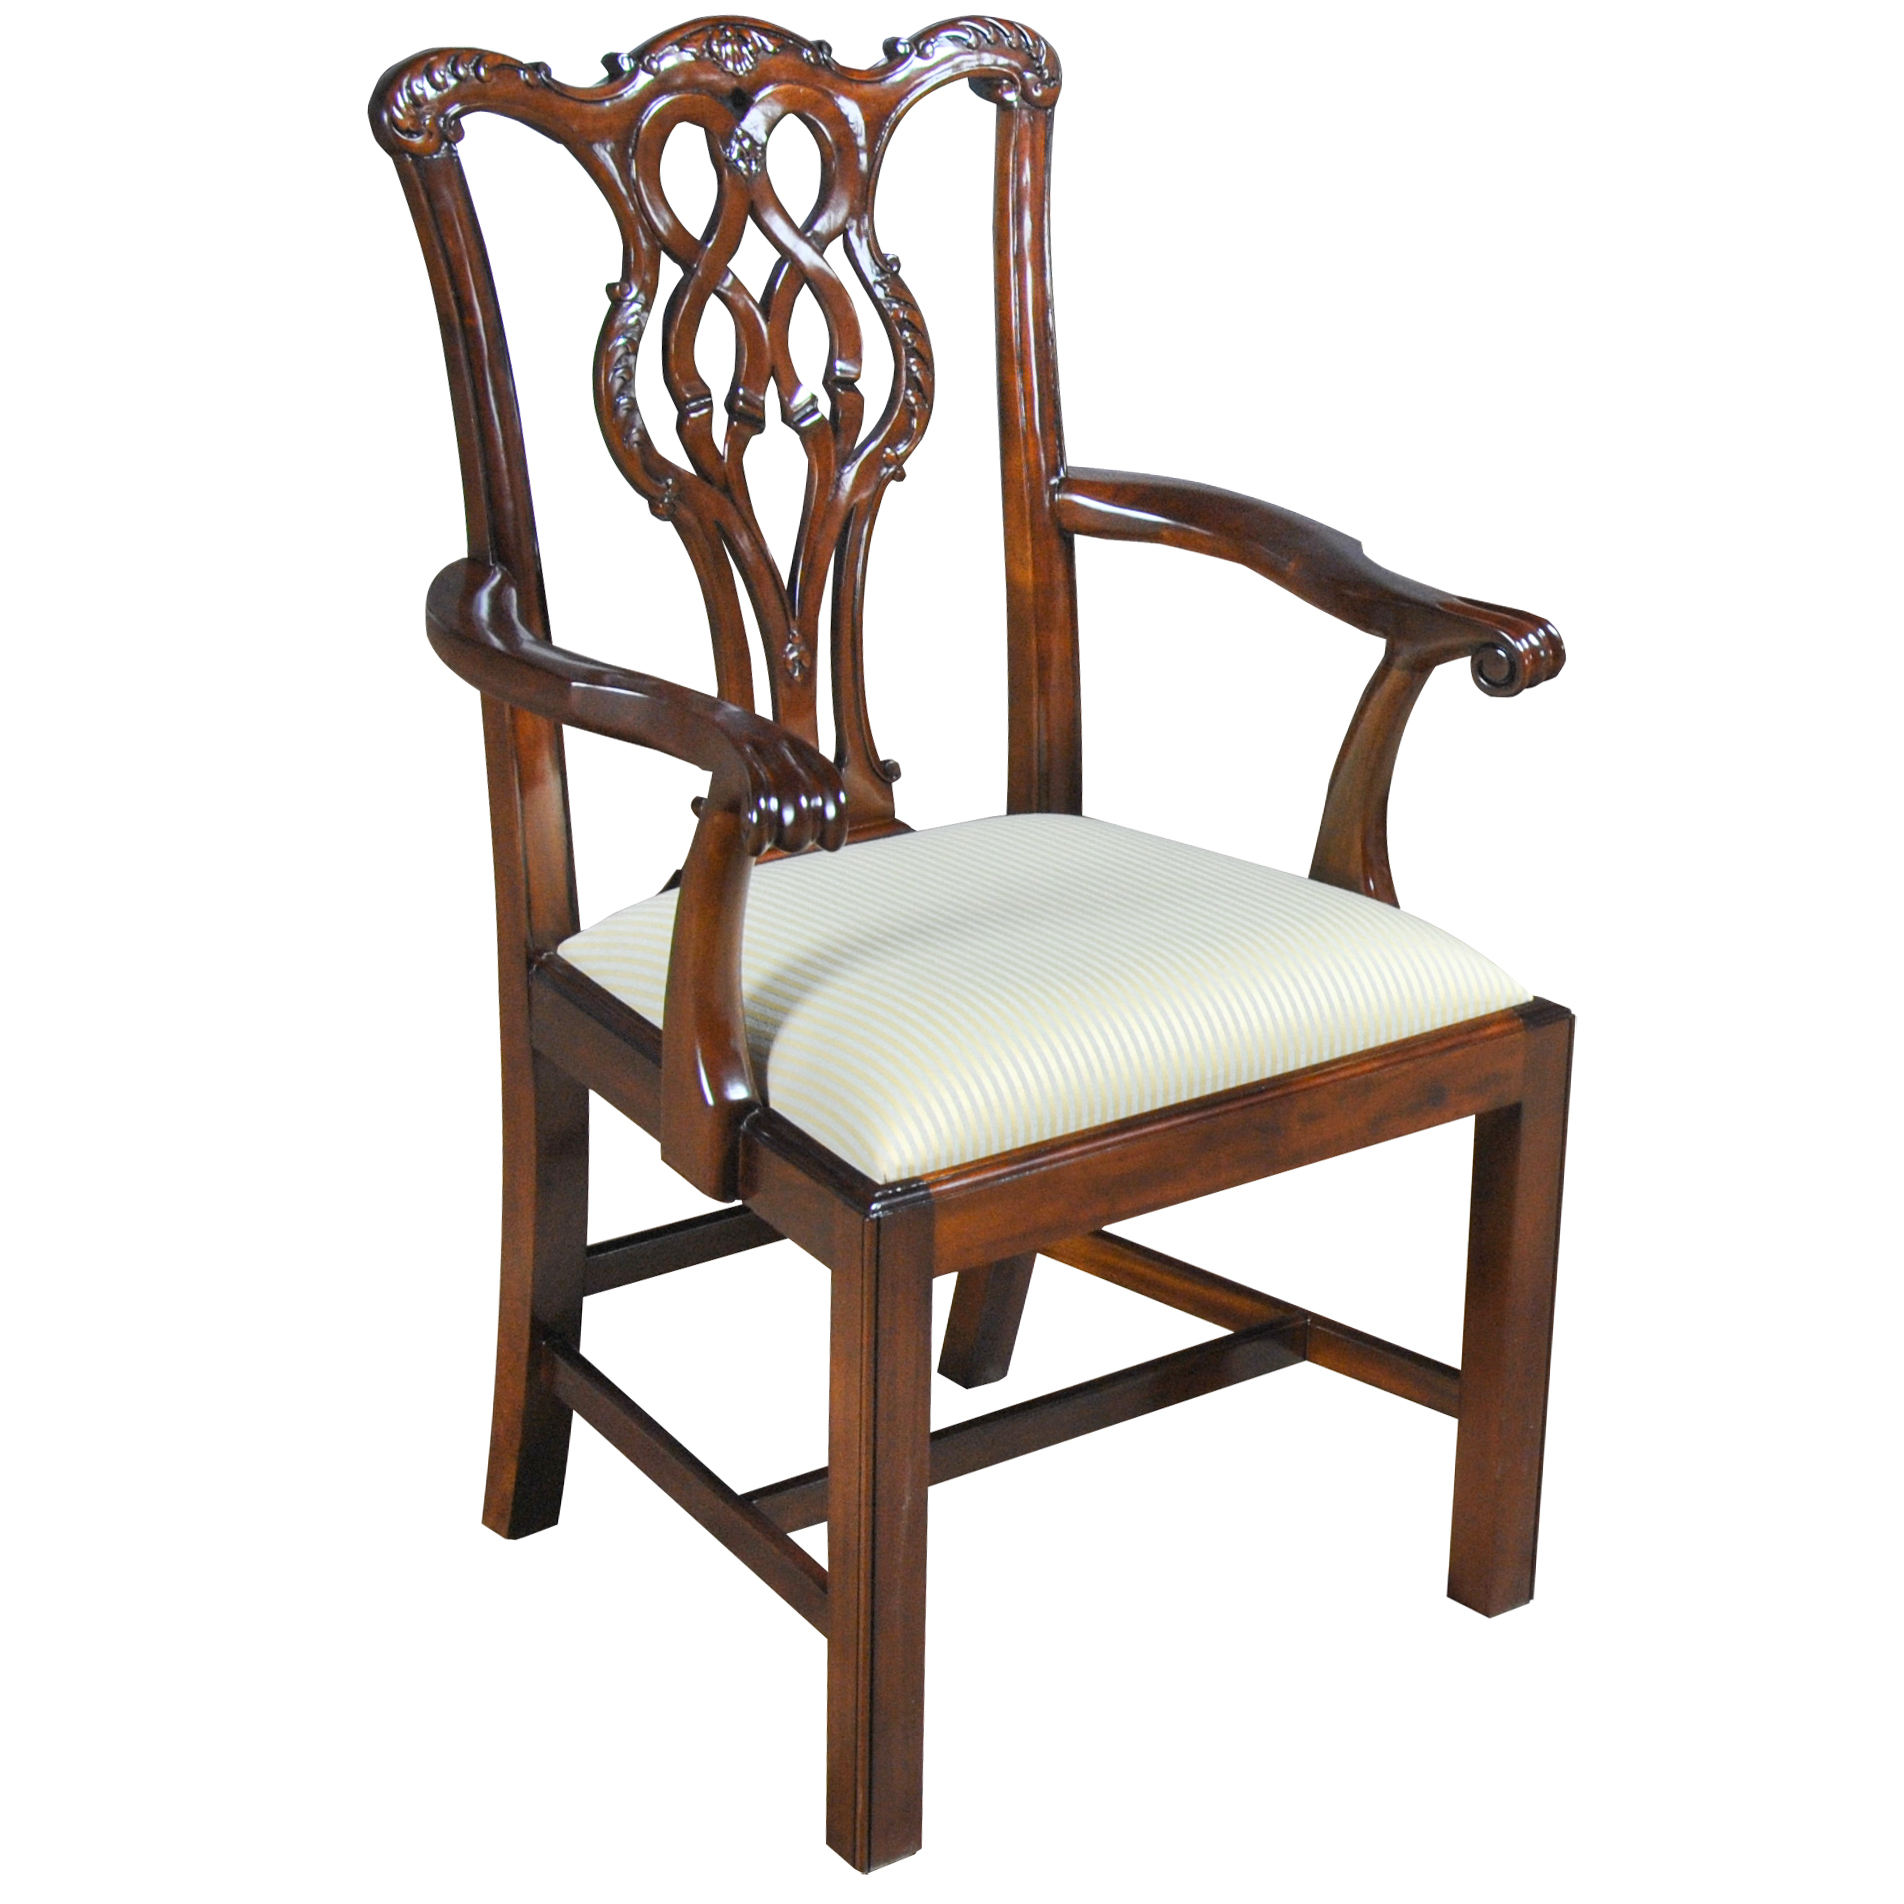 Mahogany Furniture together with Antique Chippendale Dining Chairs also Poly Wood A200 Euro Dining Height Arm Chair as well Chippendale Furniture also Catalogue item. on chippendale mahogany dining chair